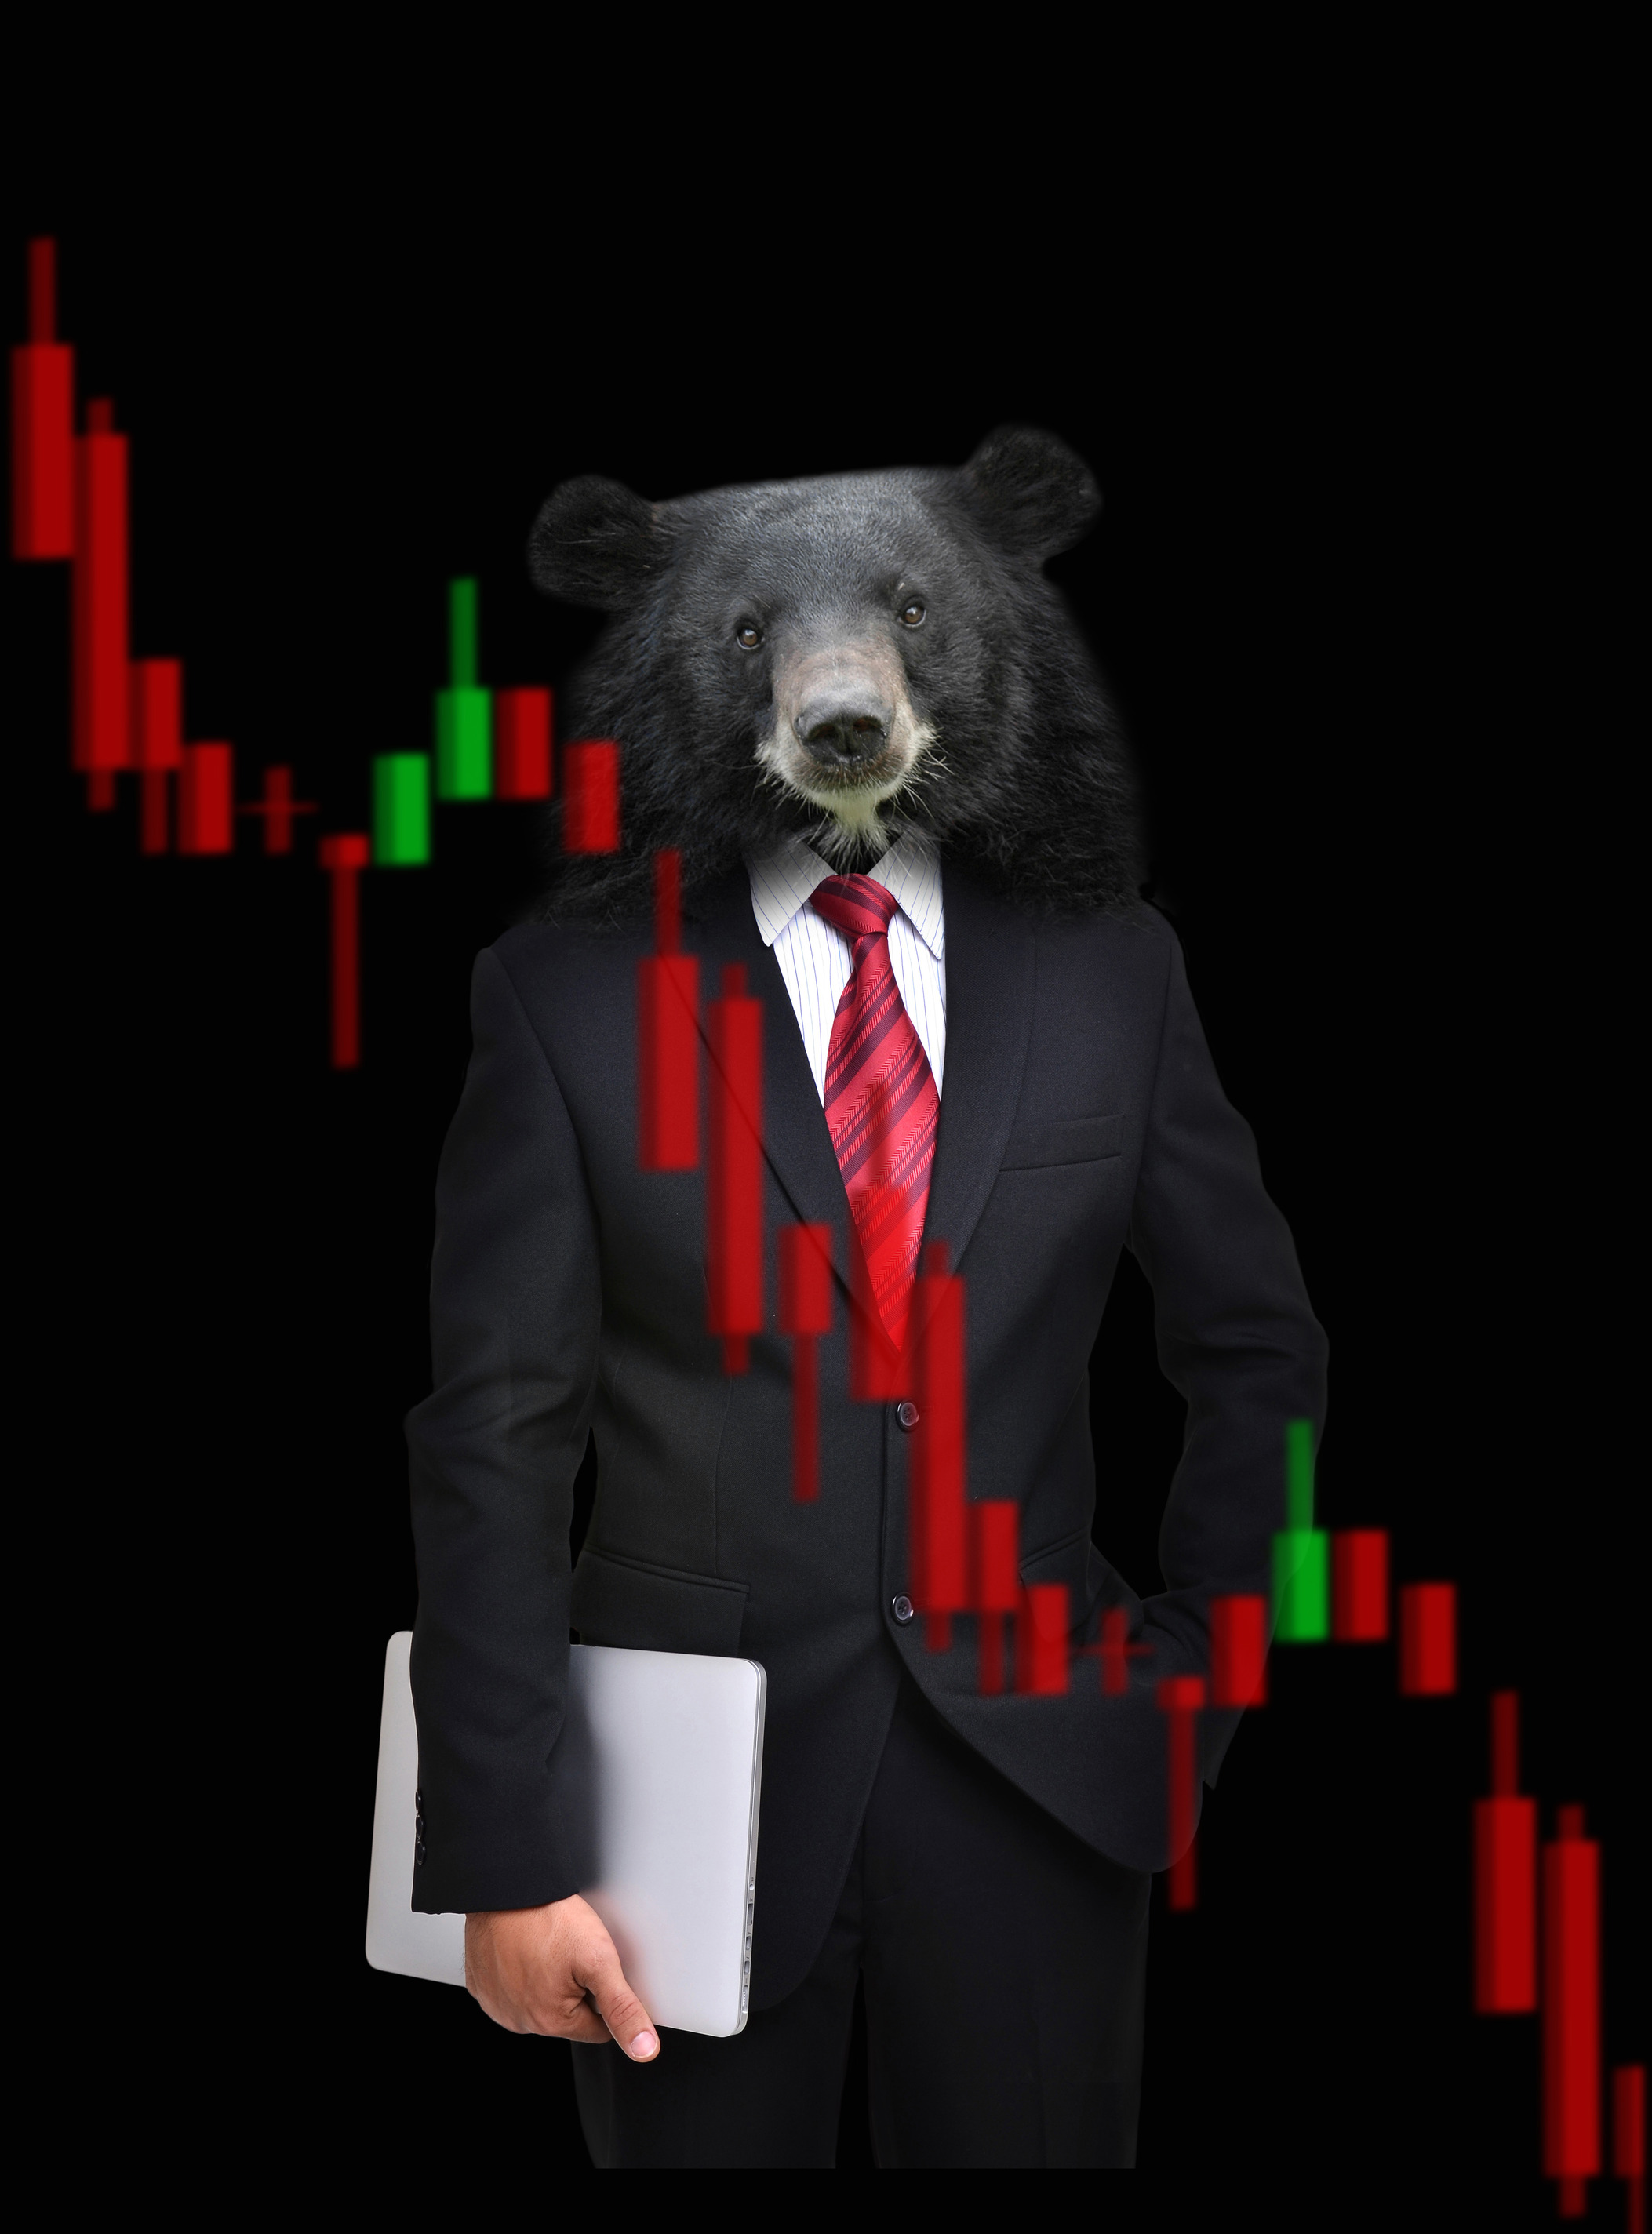 Stock Market Signal - Sell Everything